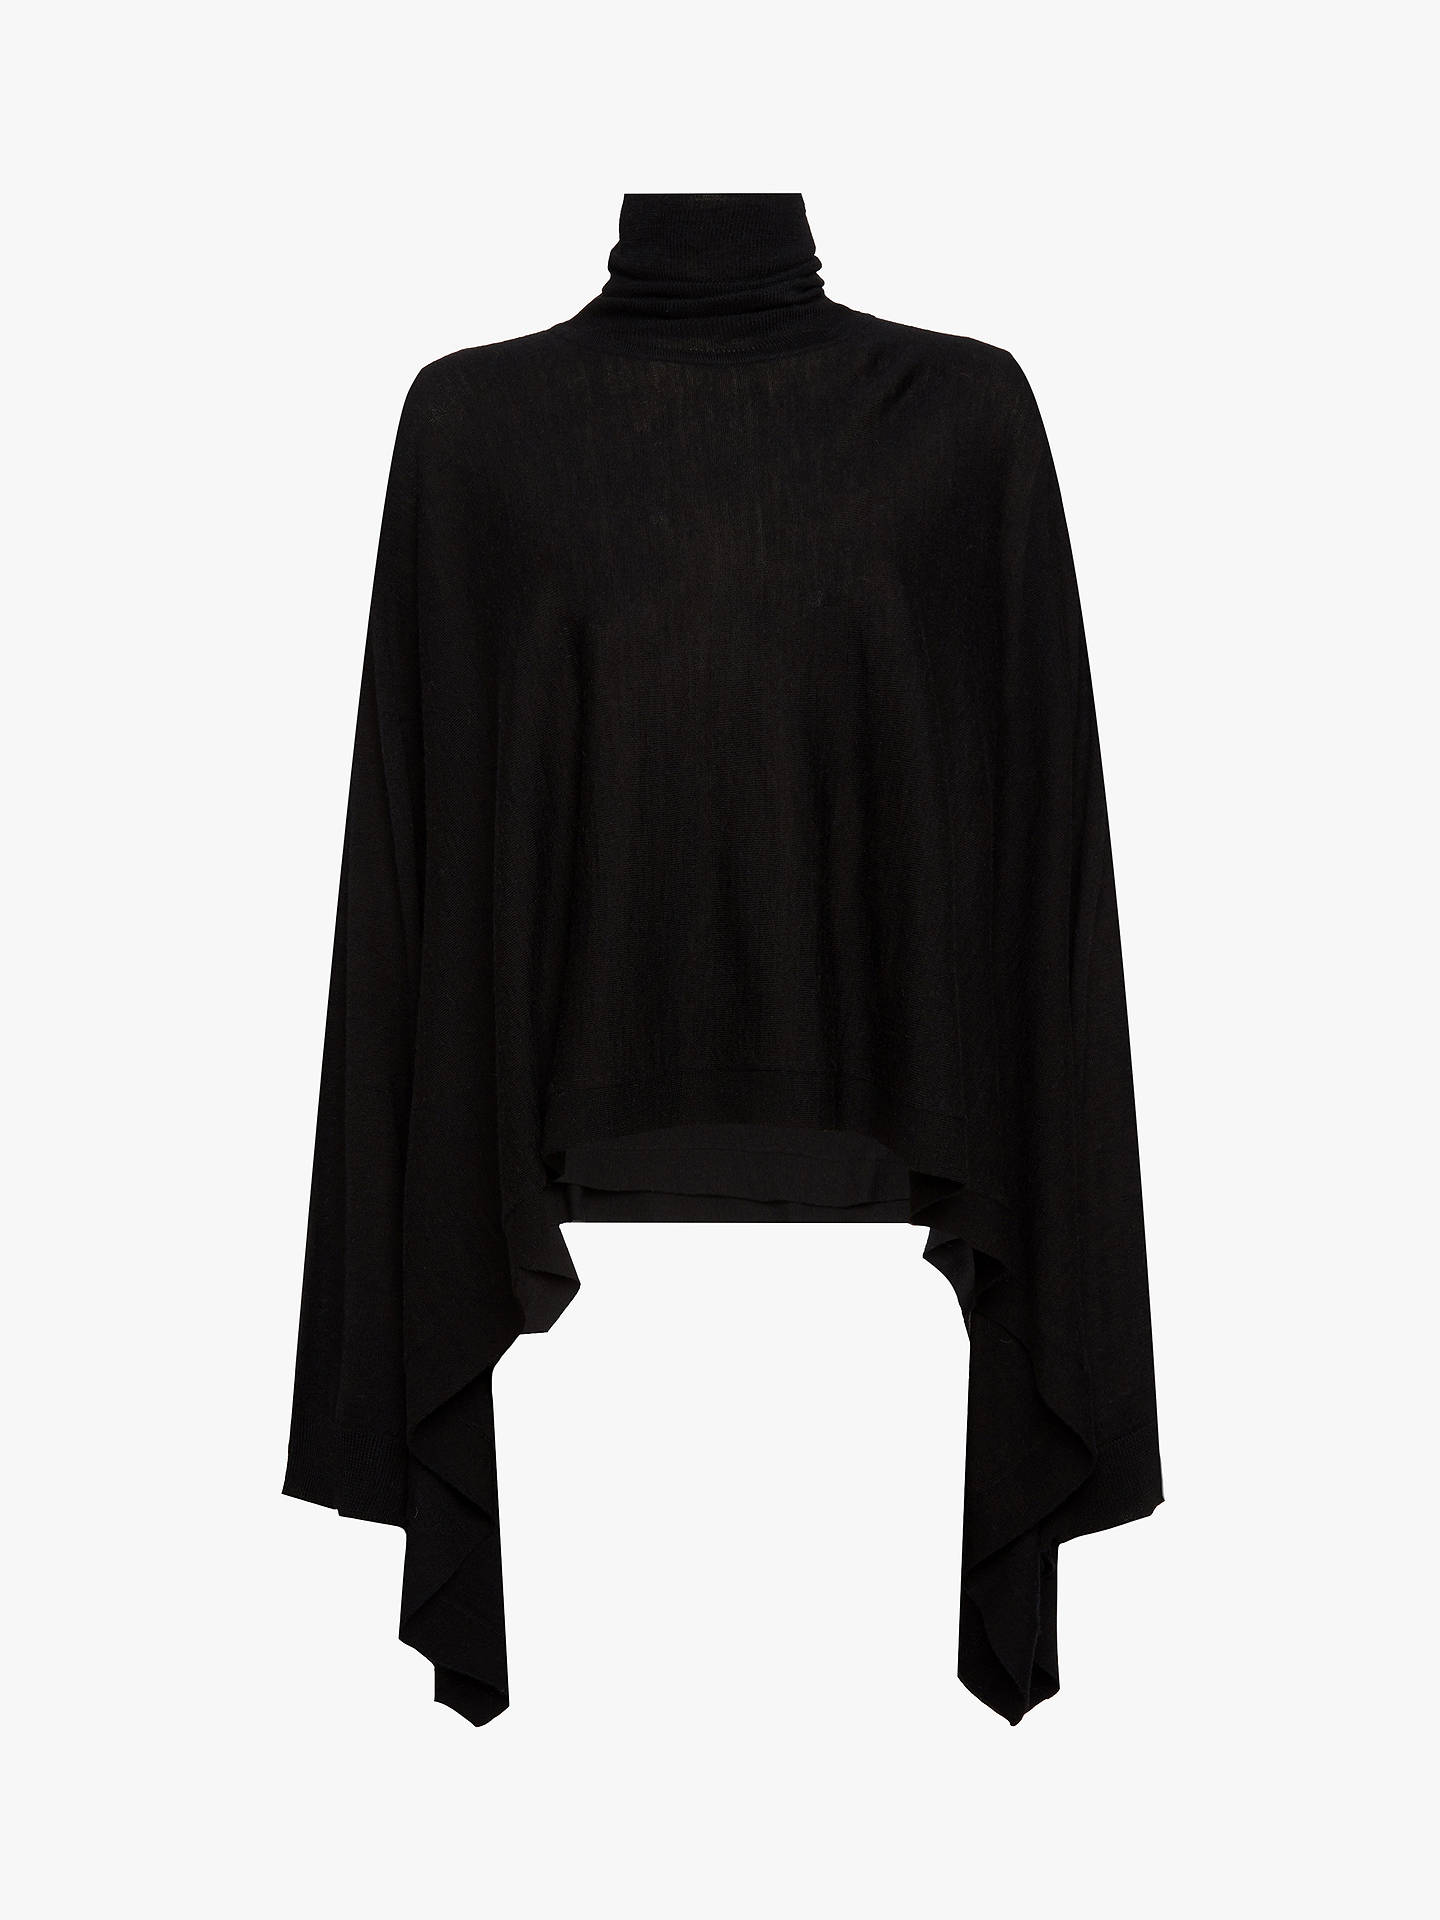 BuyAllSaints Tonia Roll Neck Wool Cape, Black, M/L Online at johnlewis.com